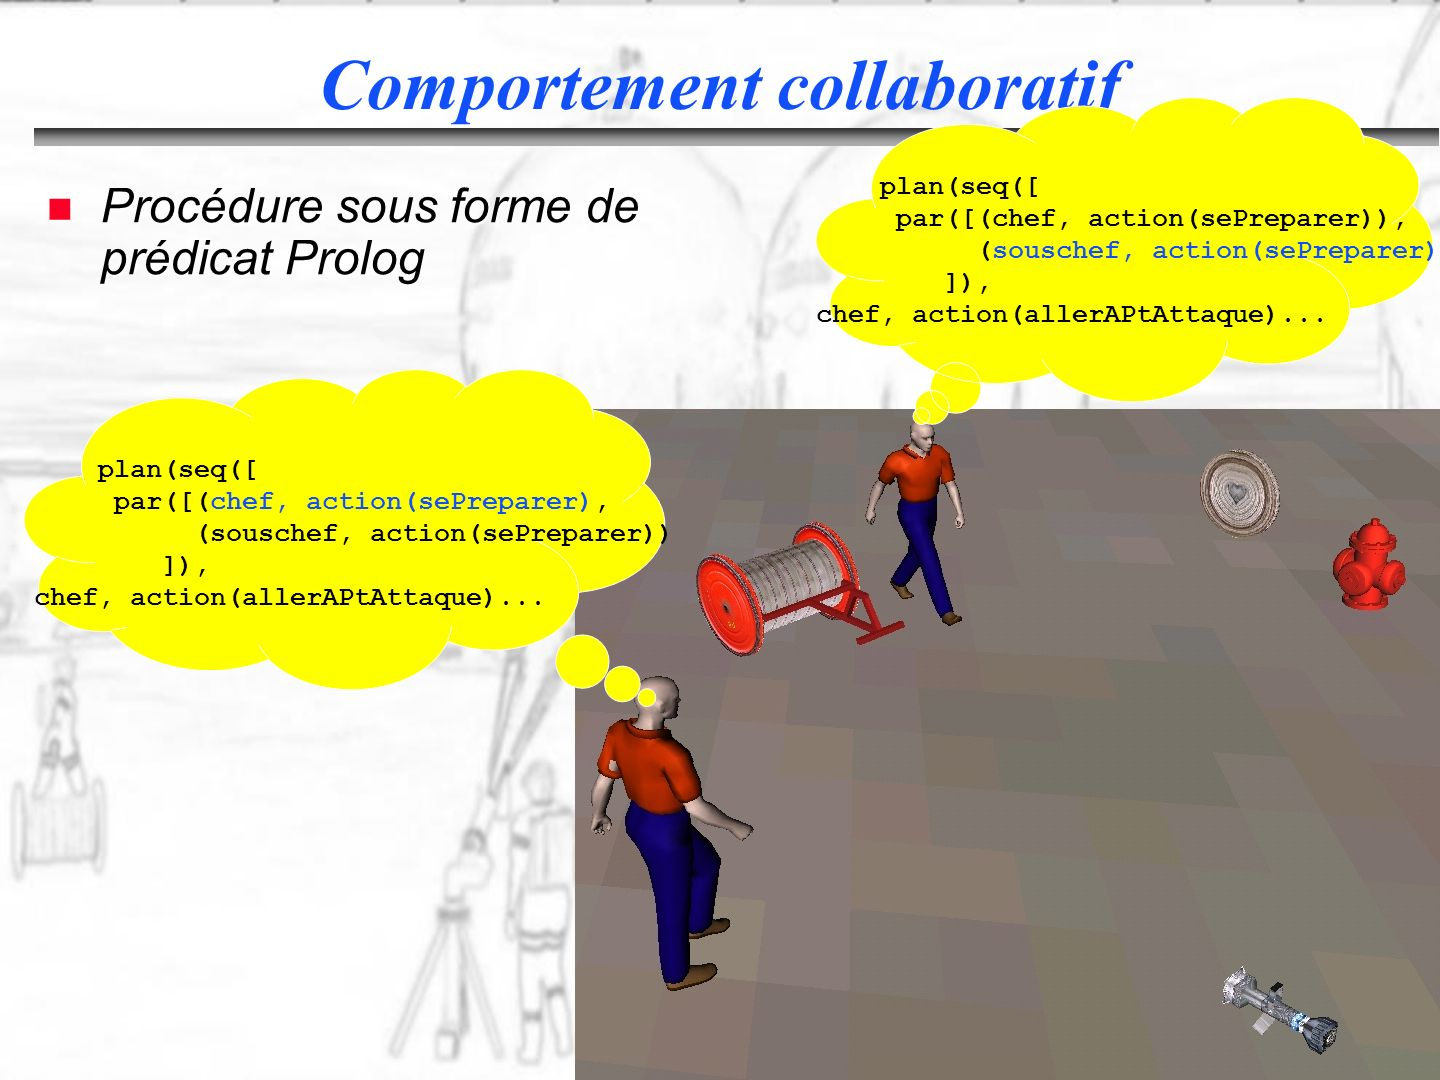 26 Comportement collaboratif plan(seq([ par([(chef, action(sePreparer), (souschef, action(sePreparer)) ]), chef, action(allerAPtAttaque)... plan(seq([